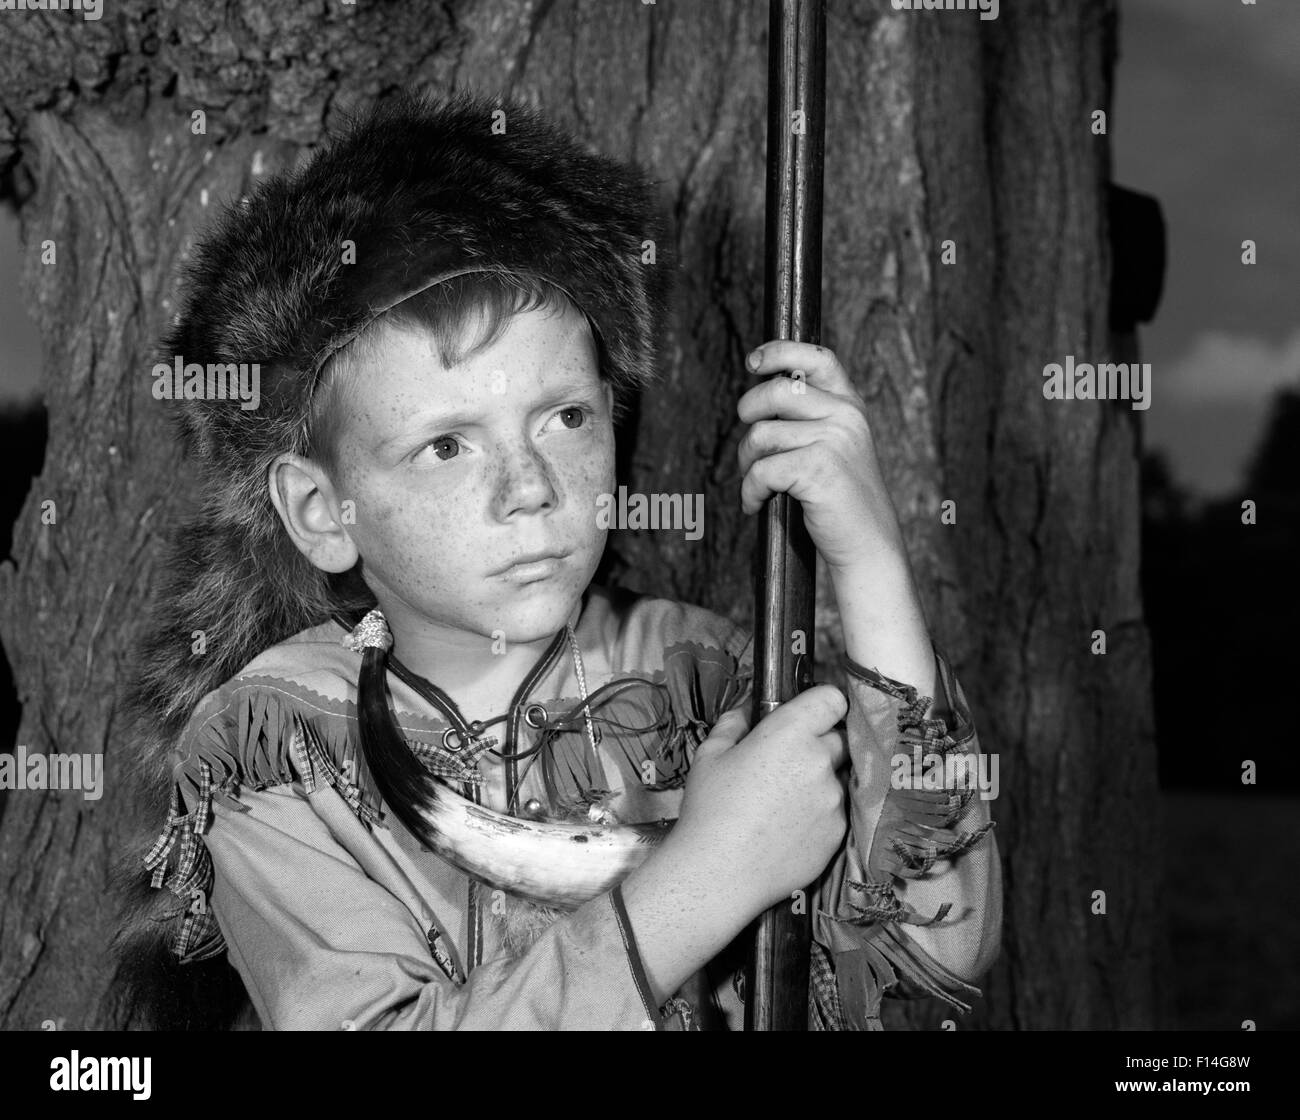 1950s BOY WEARING RACCOON SKIN HAT FRINGED WESTERN STYLE JACKET WITH POWDER  HORN AND ANTIQUE RIFLE bc7775b8544